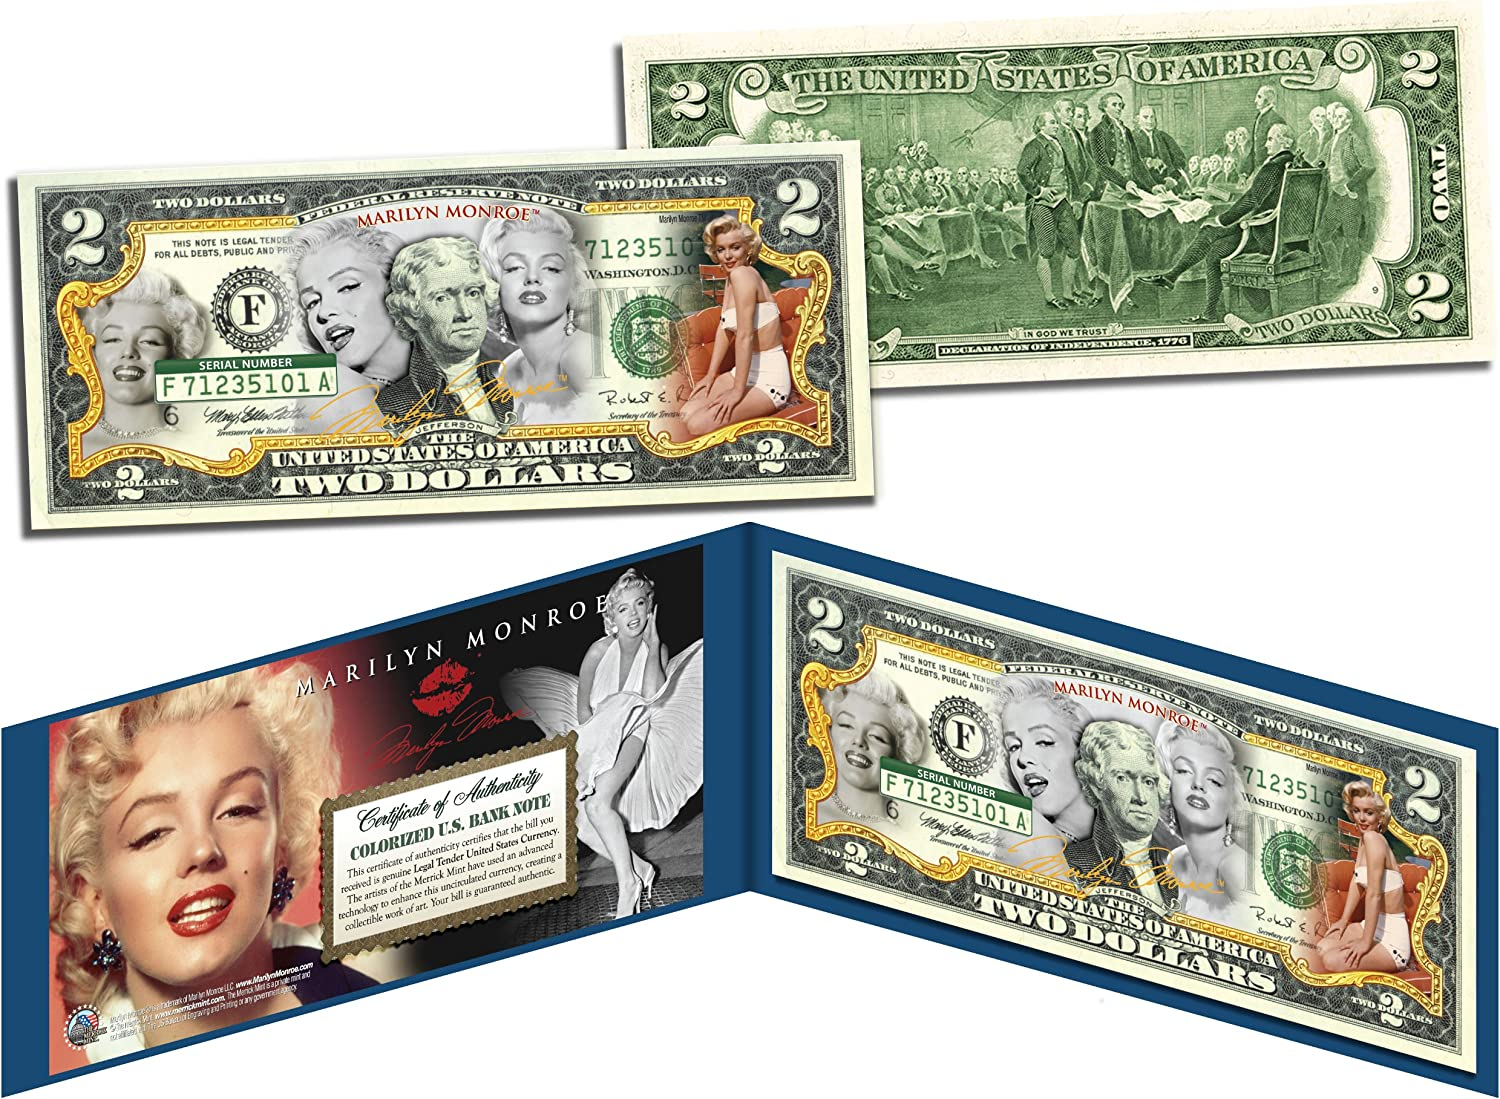 MARILYN MONROE Legal Tender USA $2 Dollar Bill *OFFICIALLY LICENSED